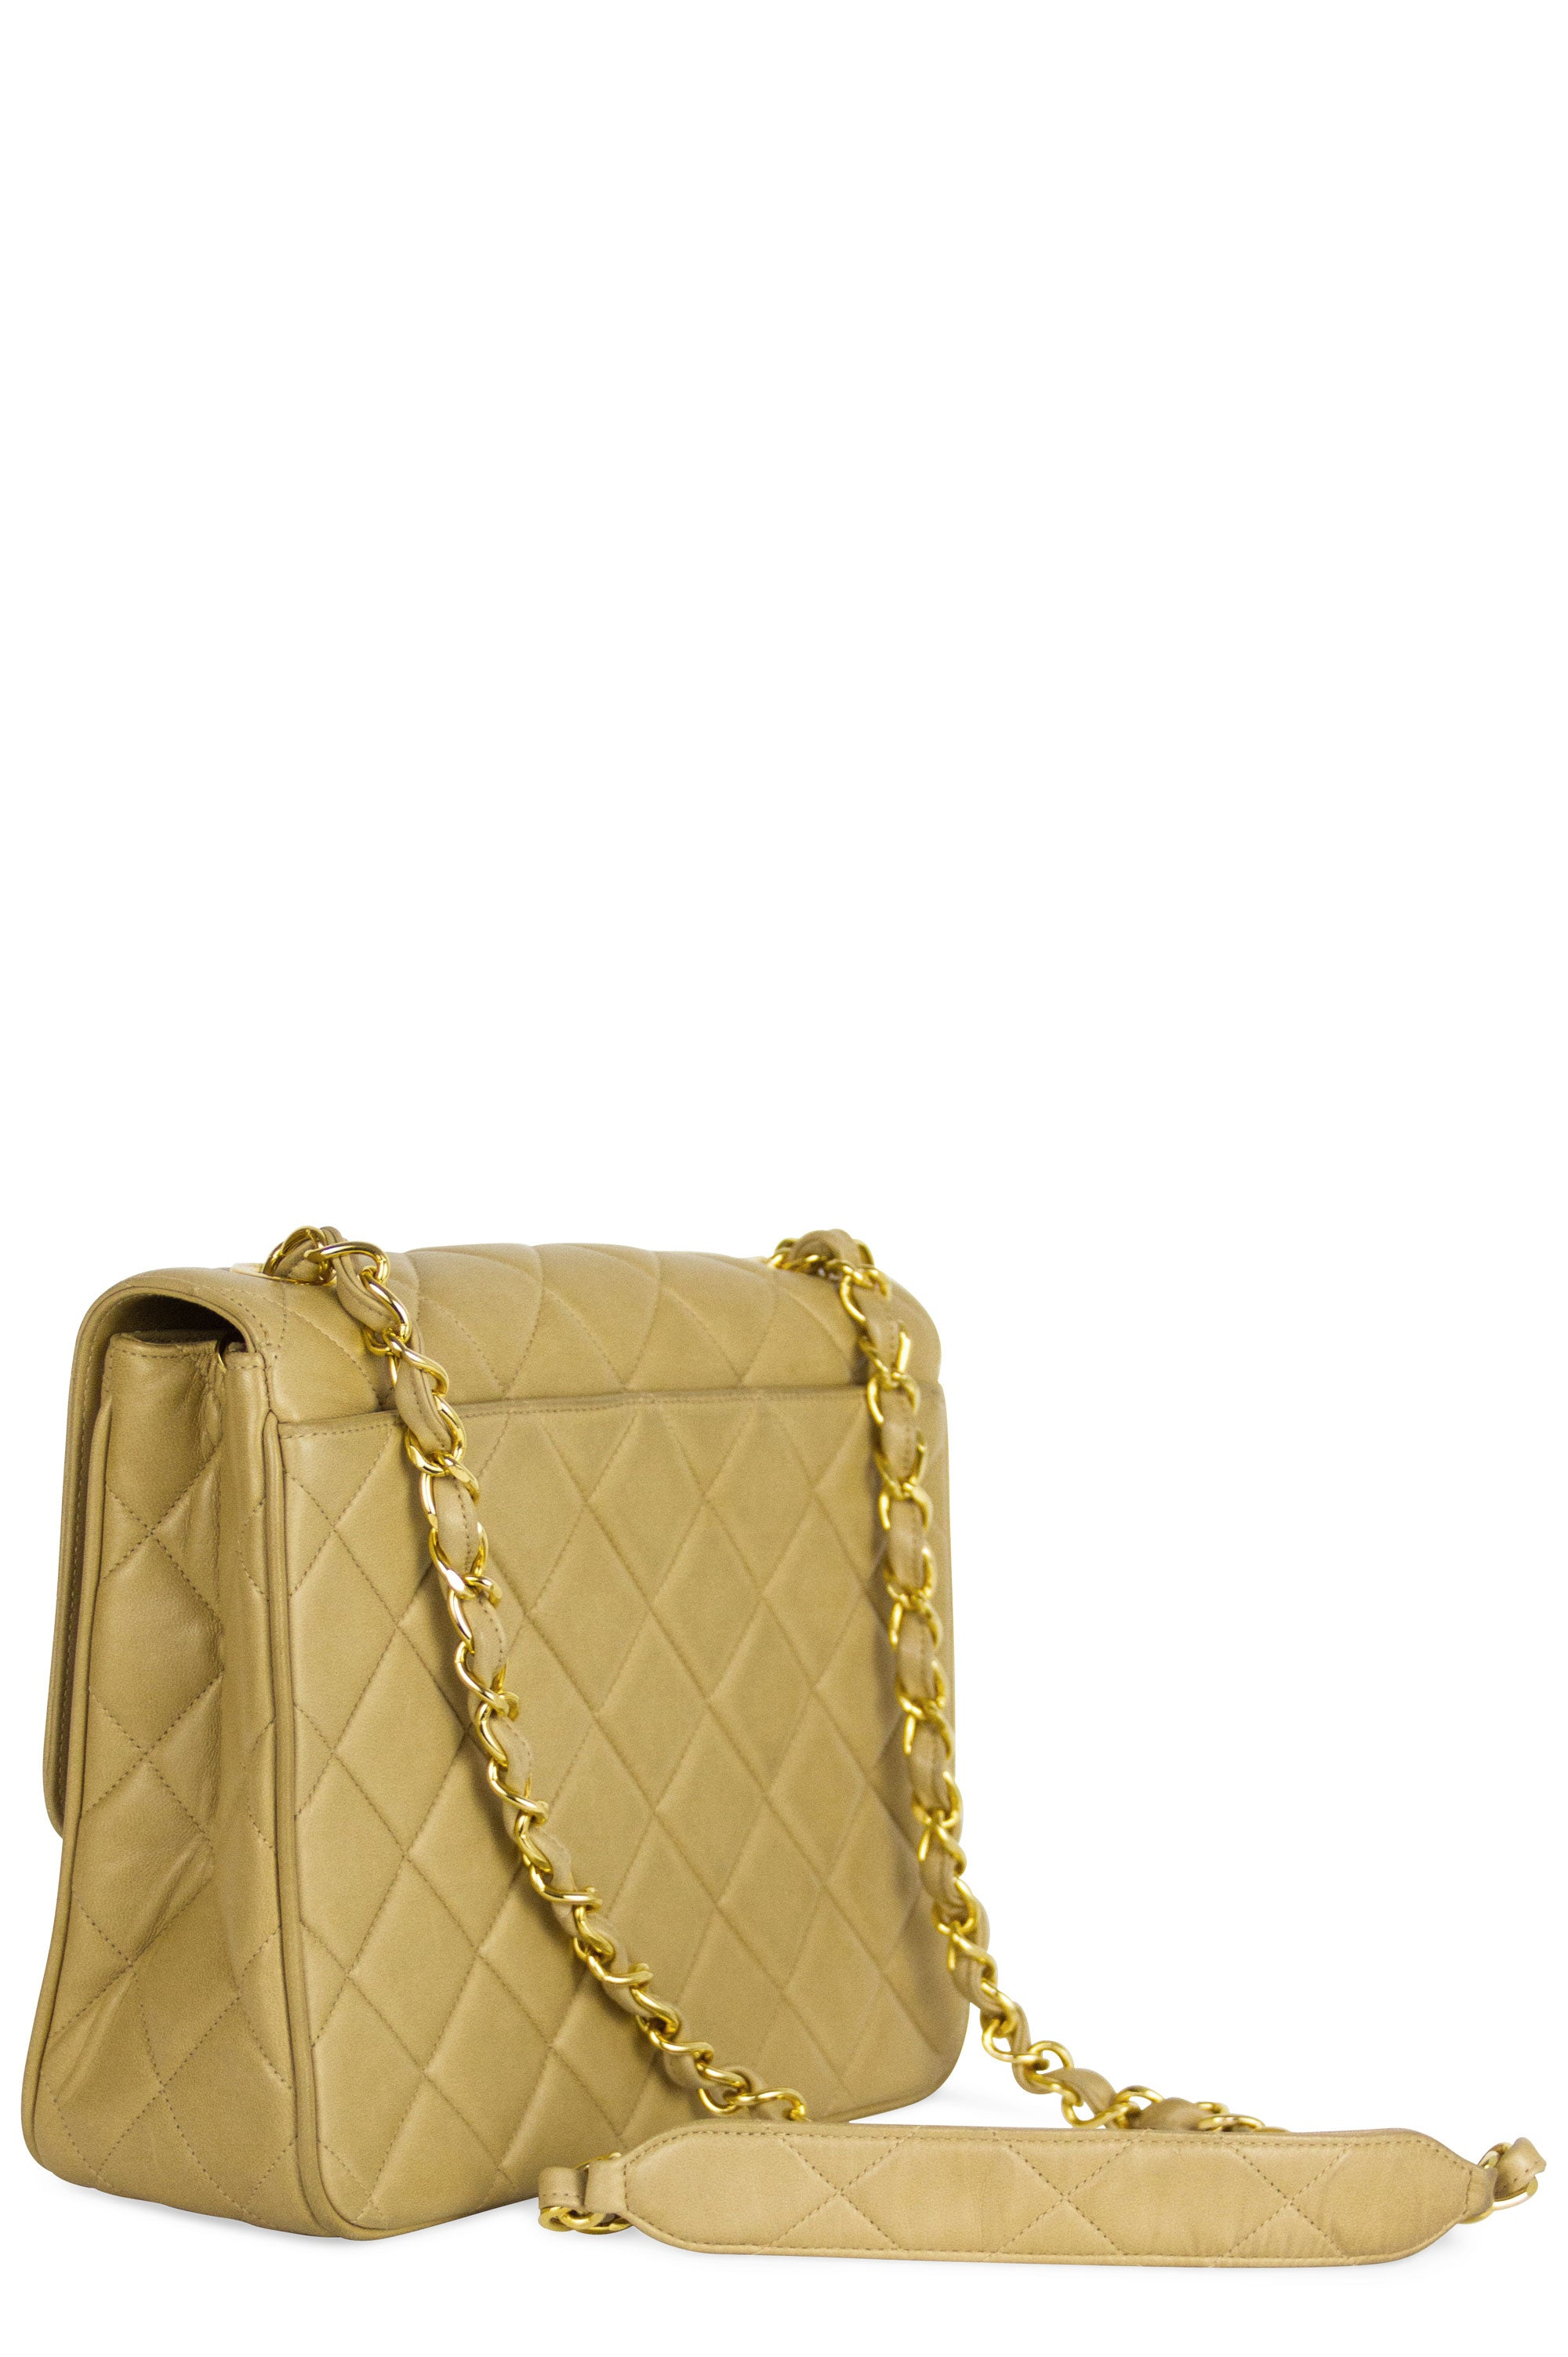 CHANEL Vintage Flap Bag CC